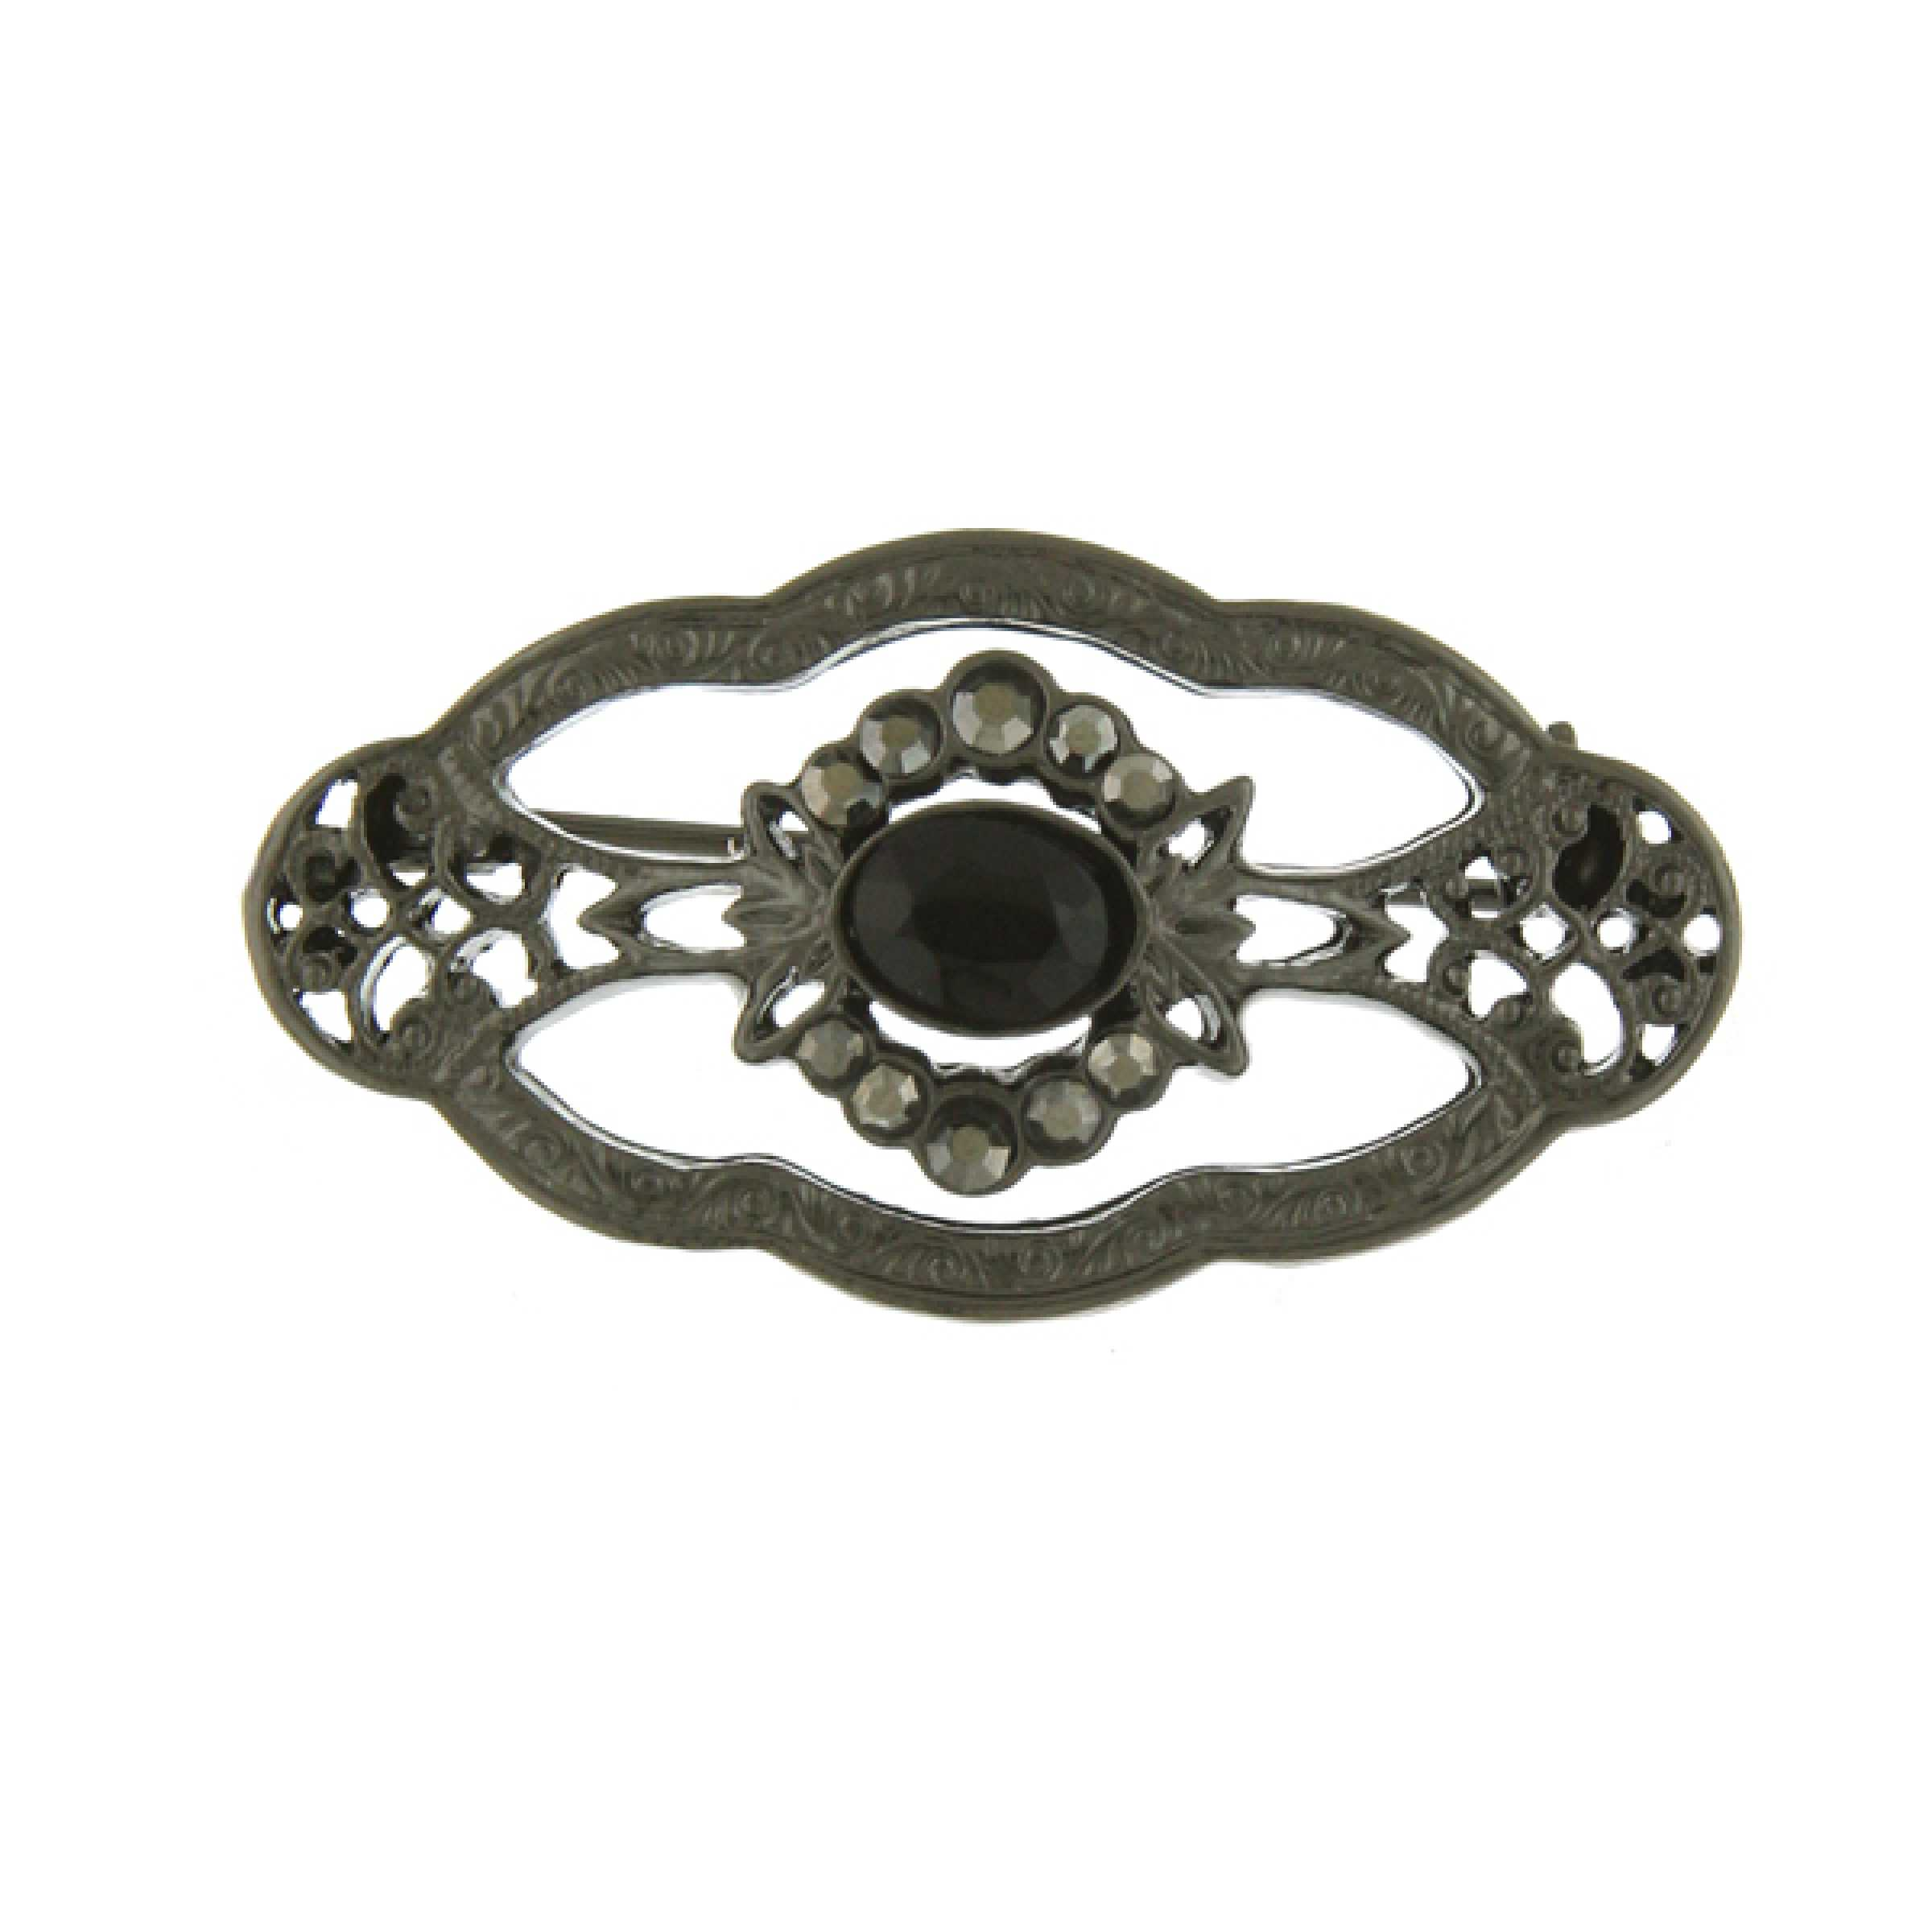 Downton Abbey Jet Jeweled Edwardian Oval Brooch by Downton Abbey